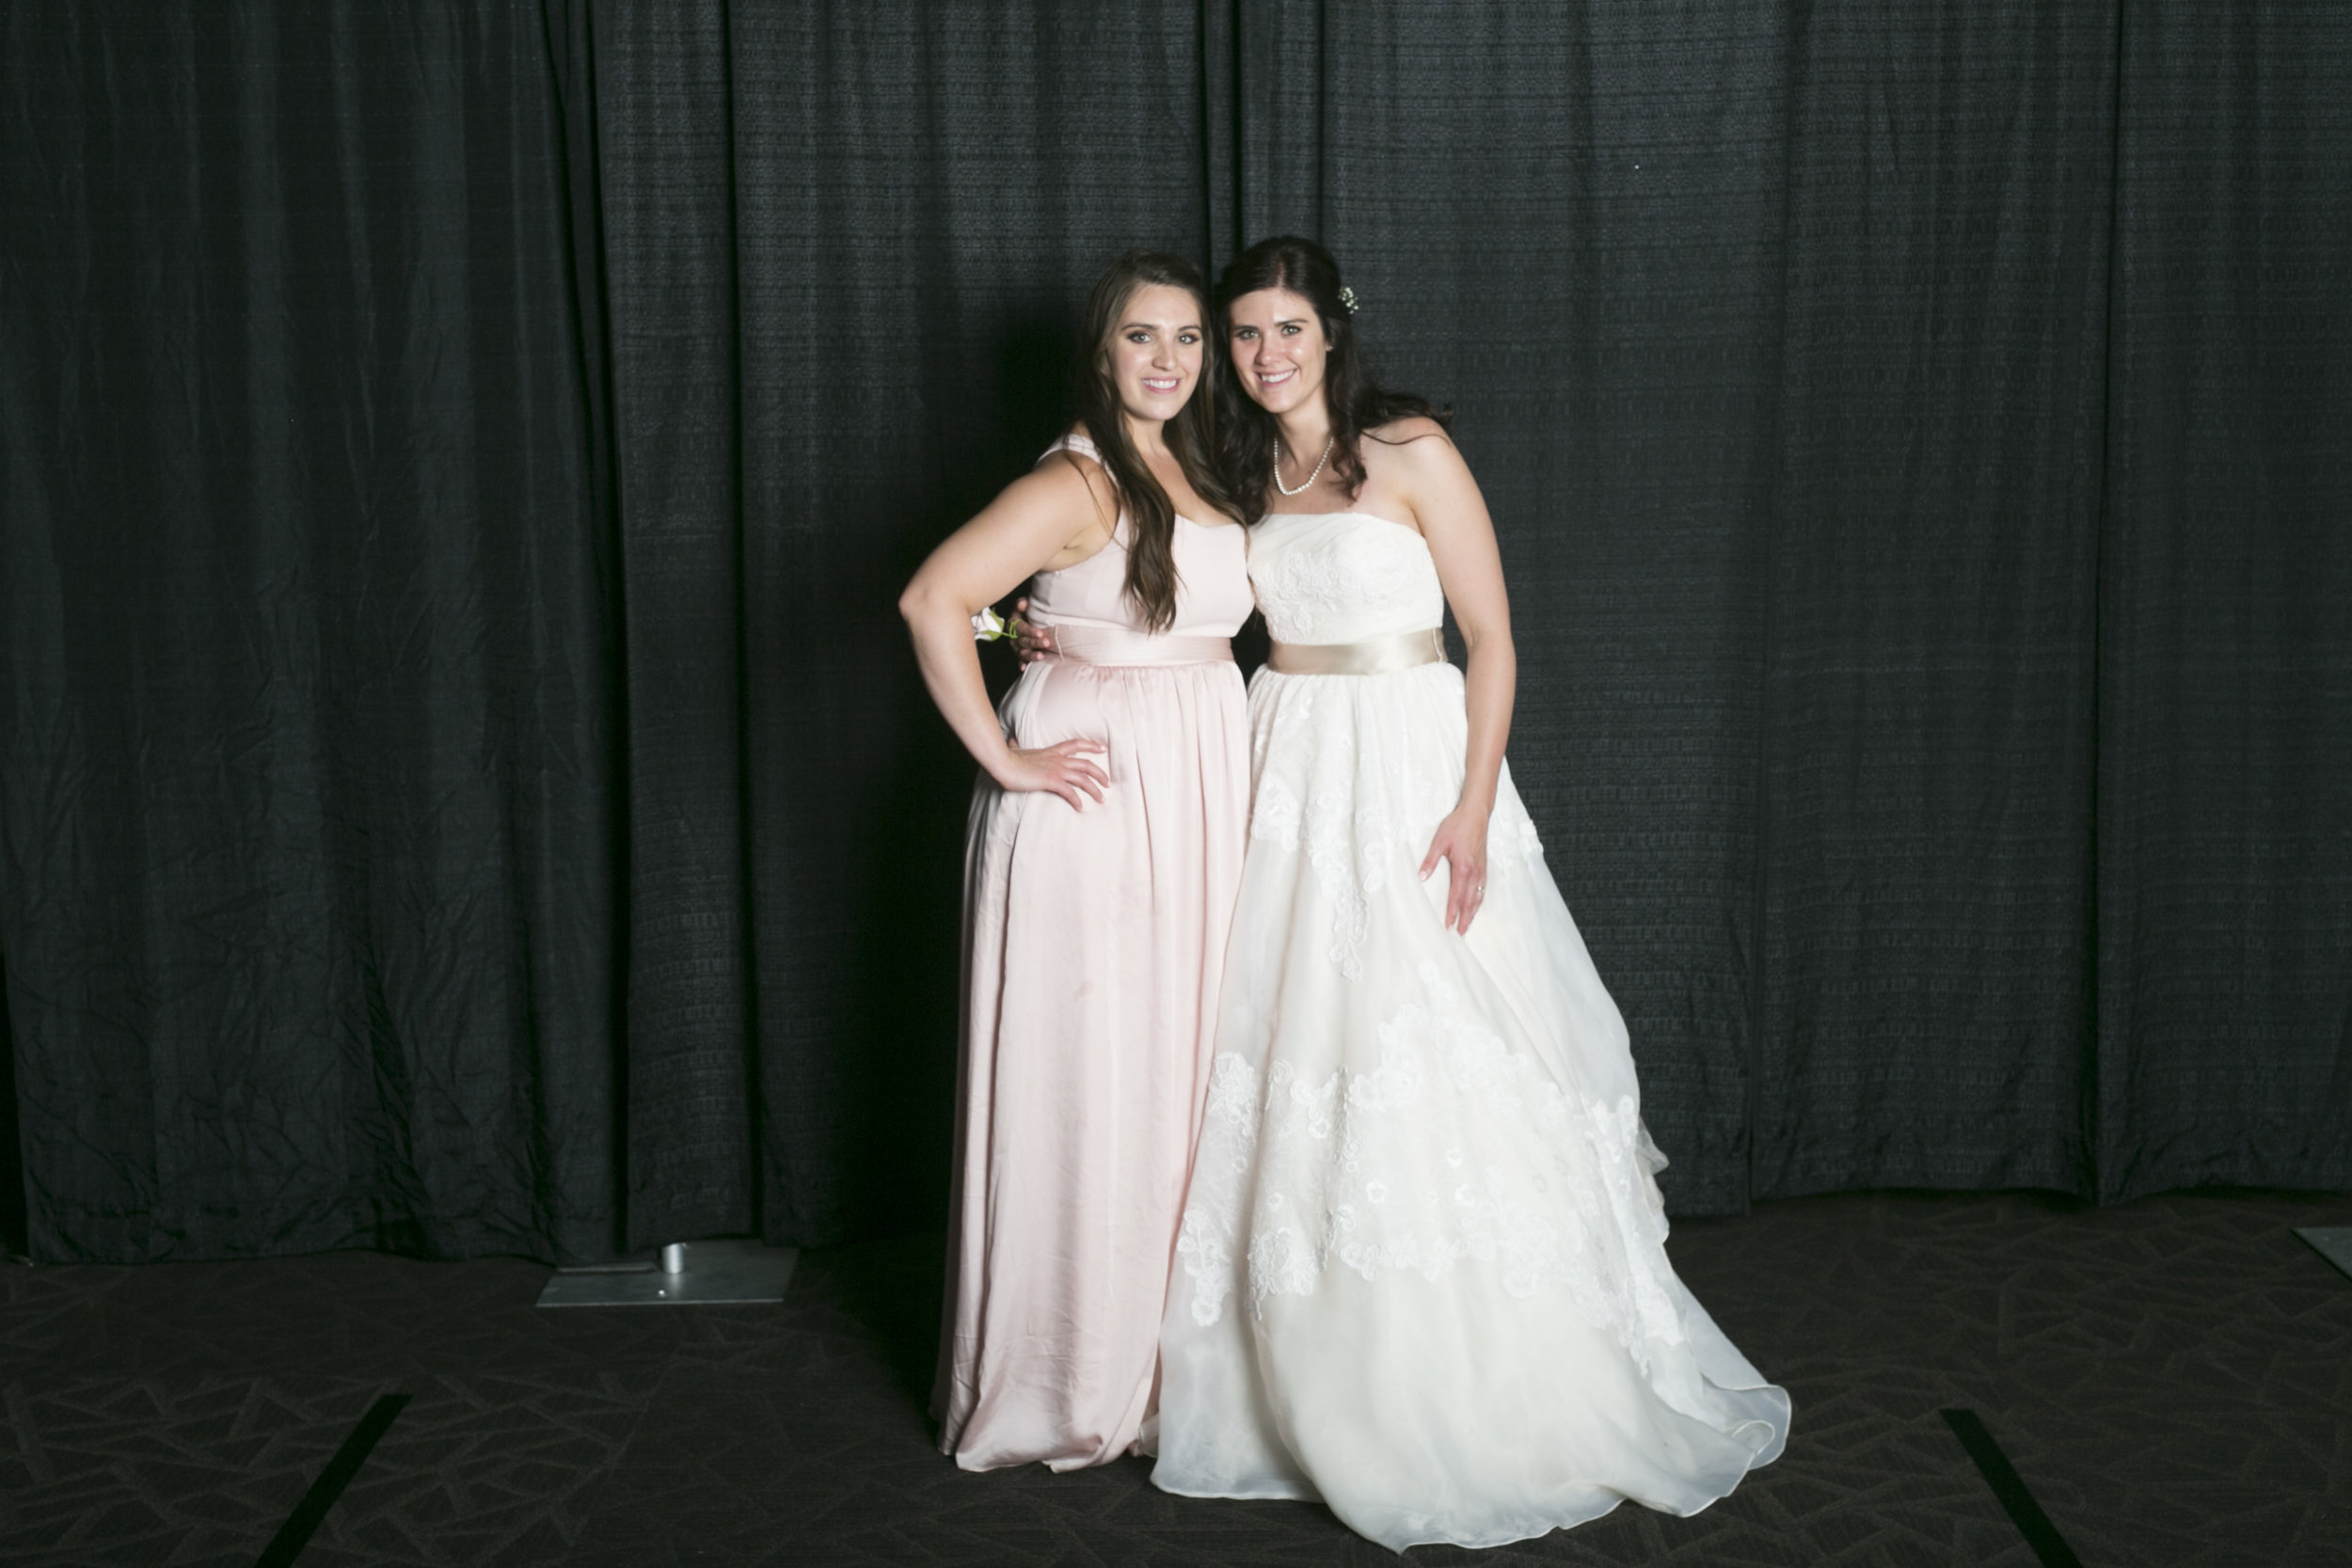 wedding photo booth-117.jpg